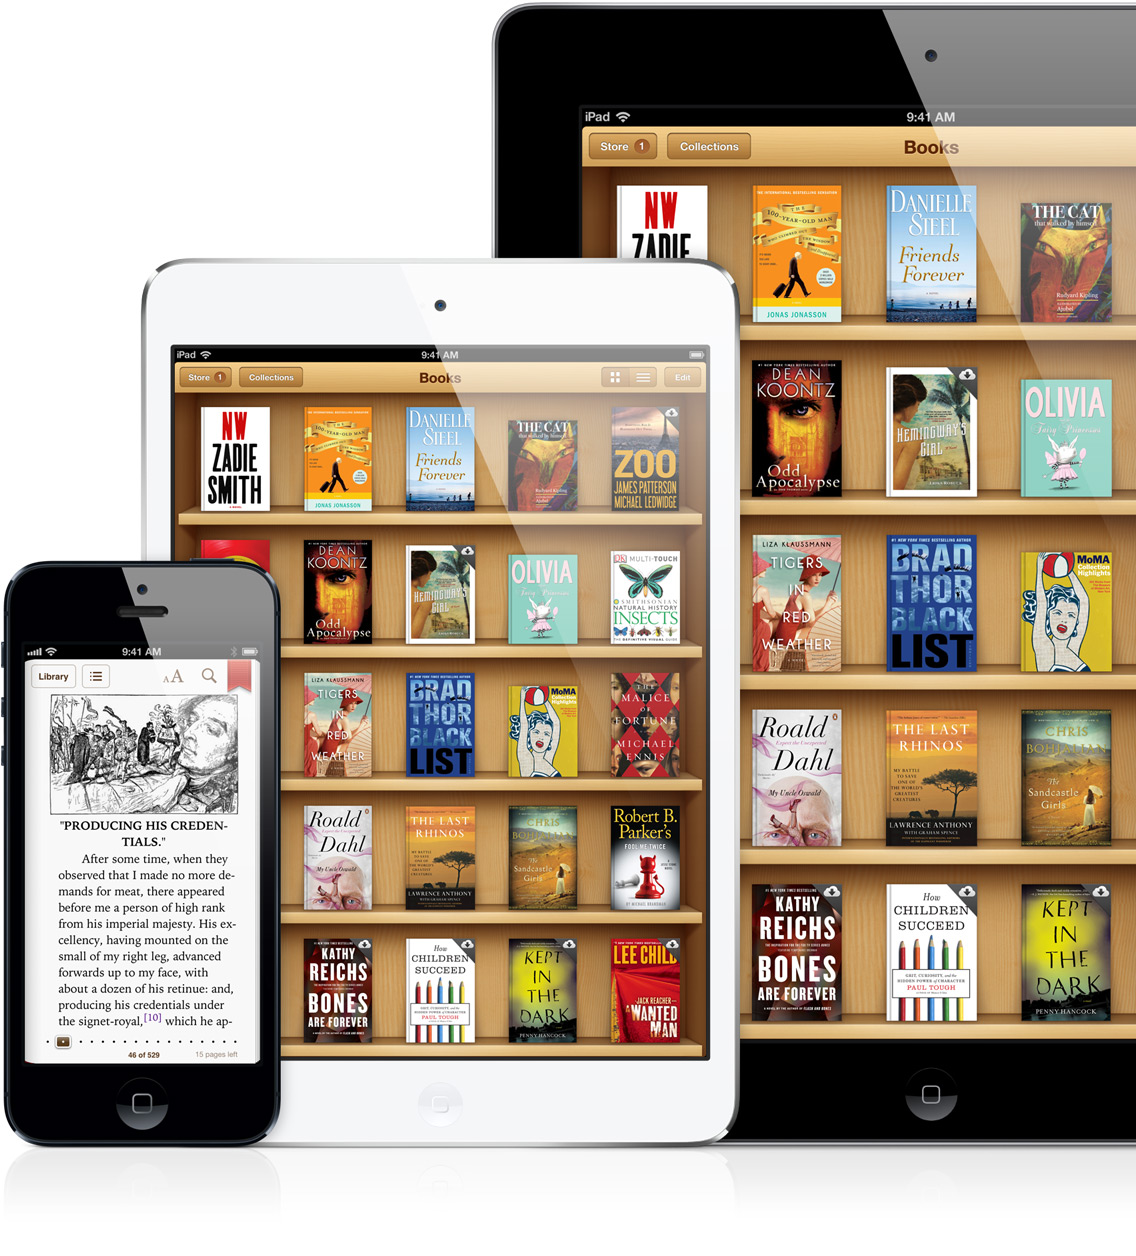 iBooks em iPad, iPad mini e iPhone 5